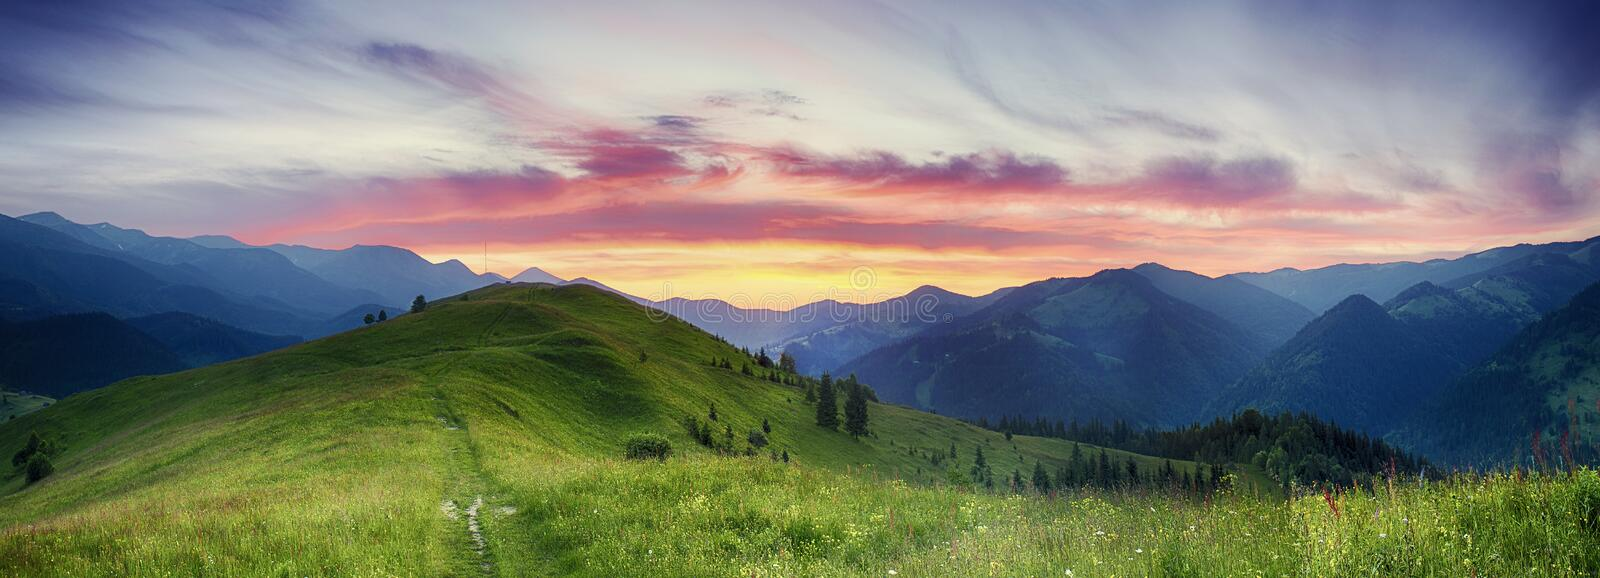 Mountain sunset. Carpathian mountains summer sunset landscape with dramatic sky and blue mountains stock photo